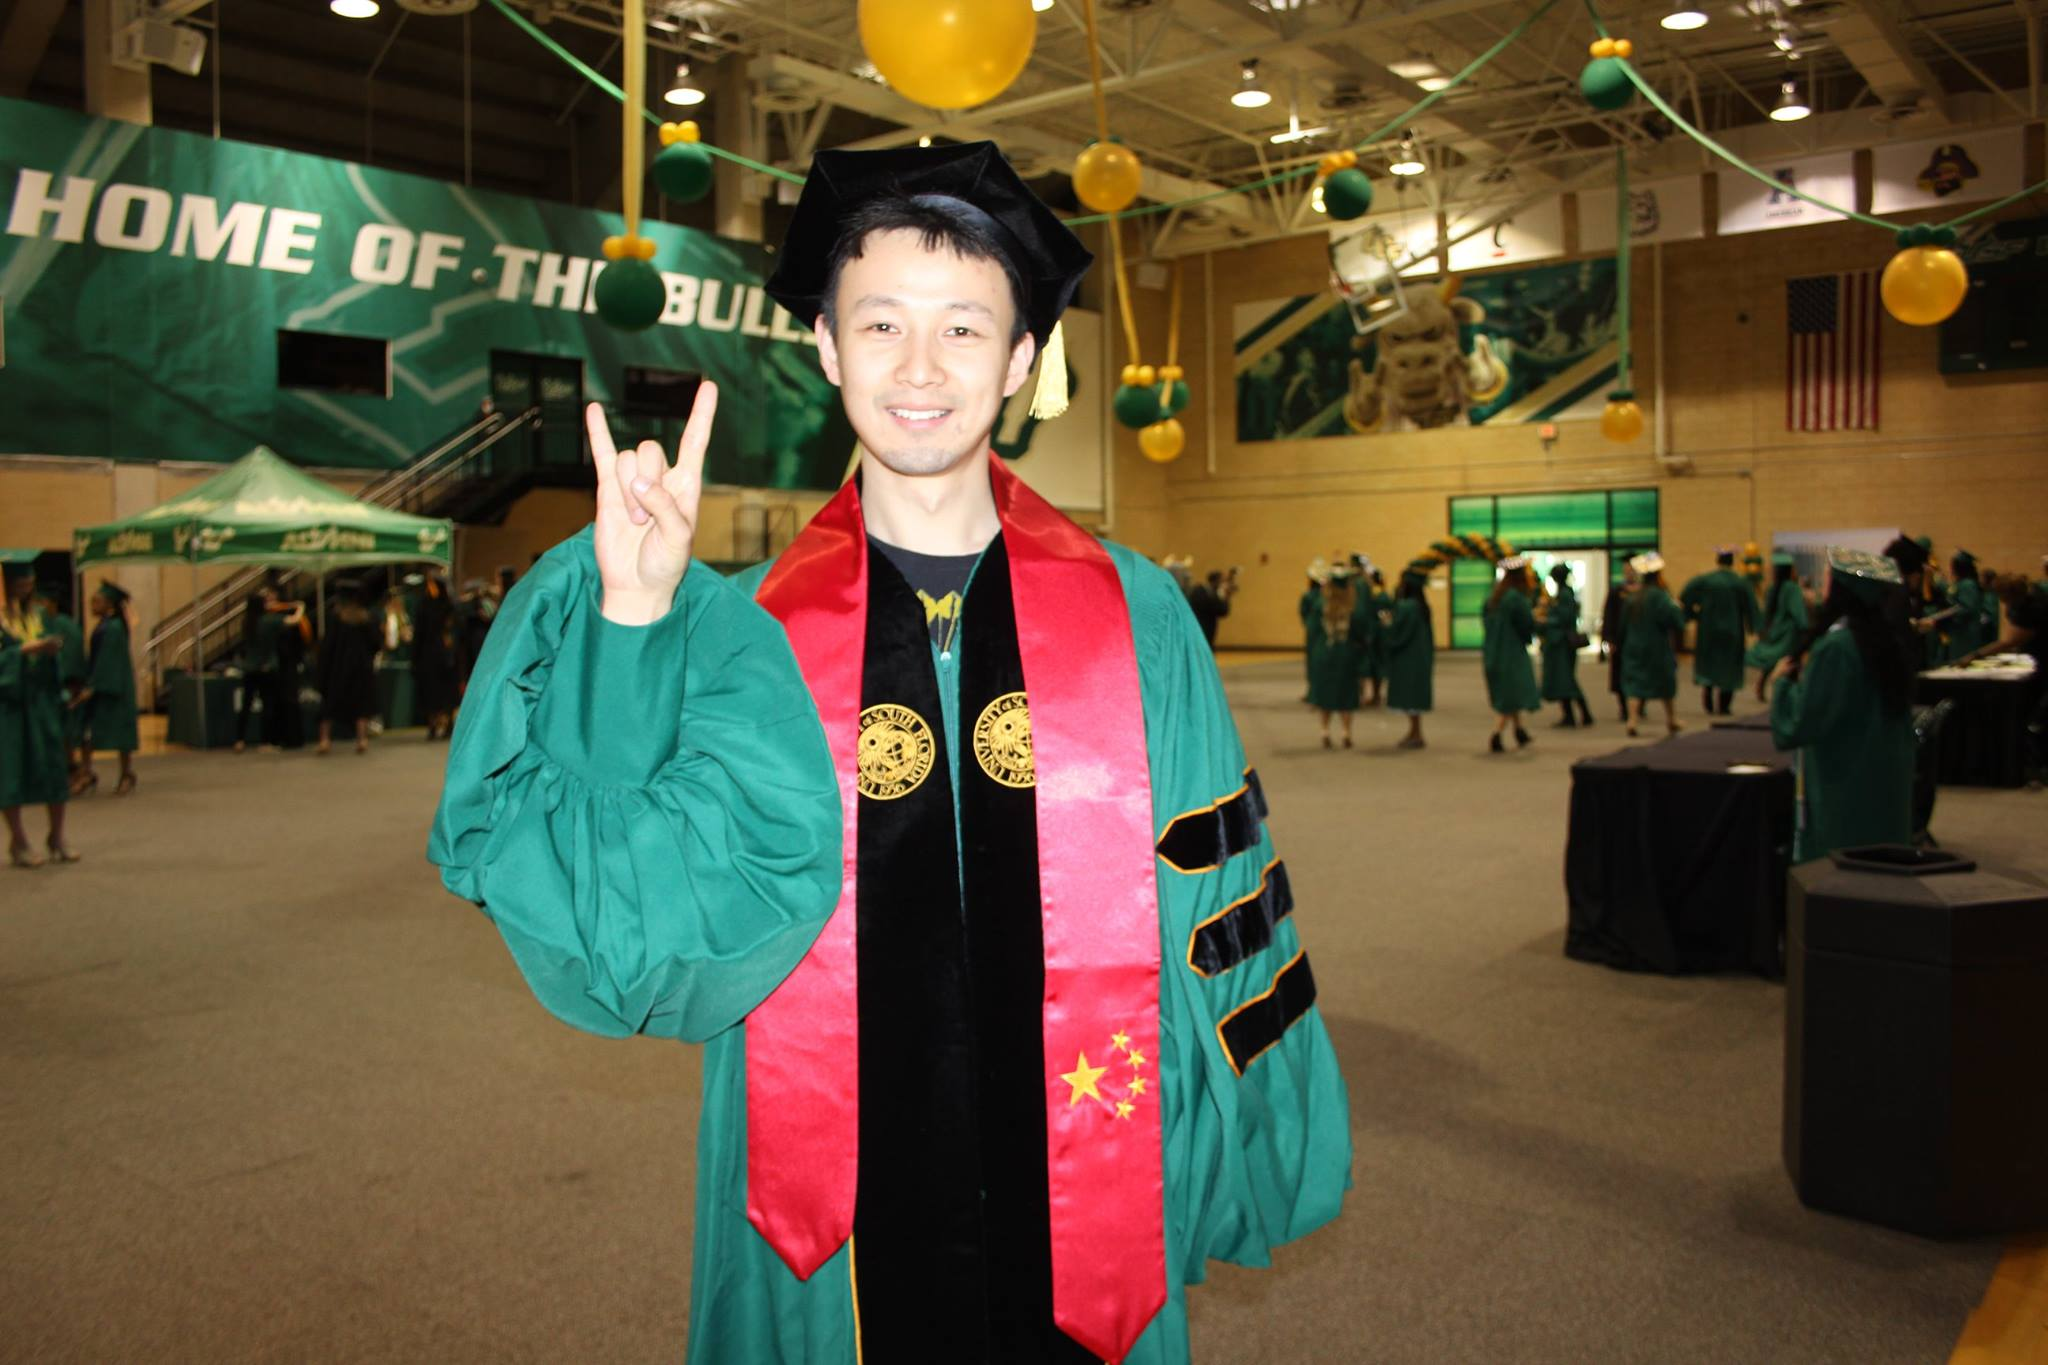 After five years at the University of South Florida, Xu Zhang, a Doctor of Medicine from China, graduates with his PhD in Molecular Pharmacology.n